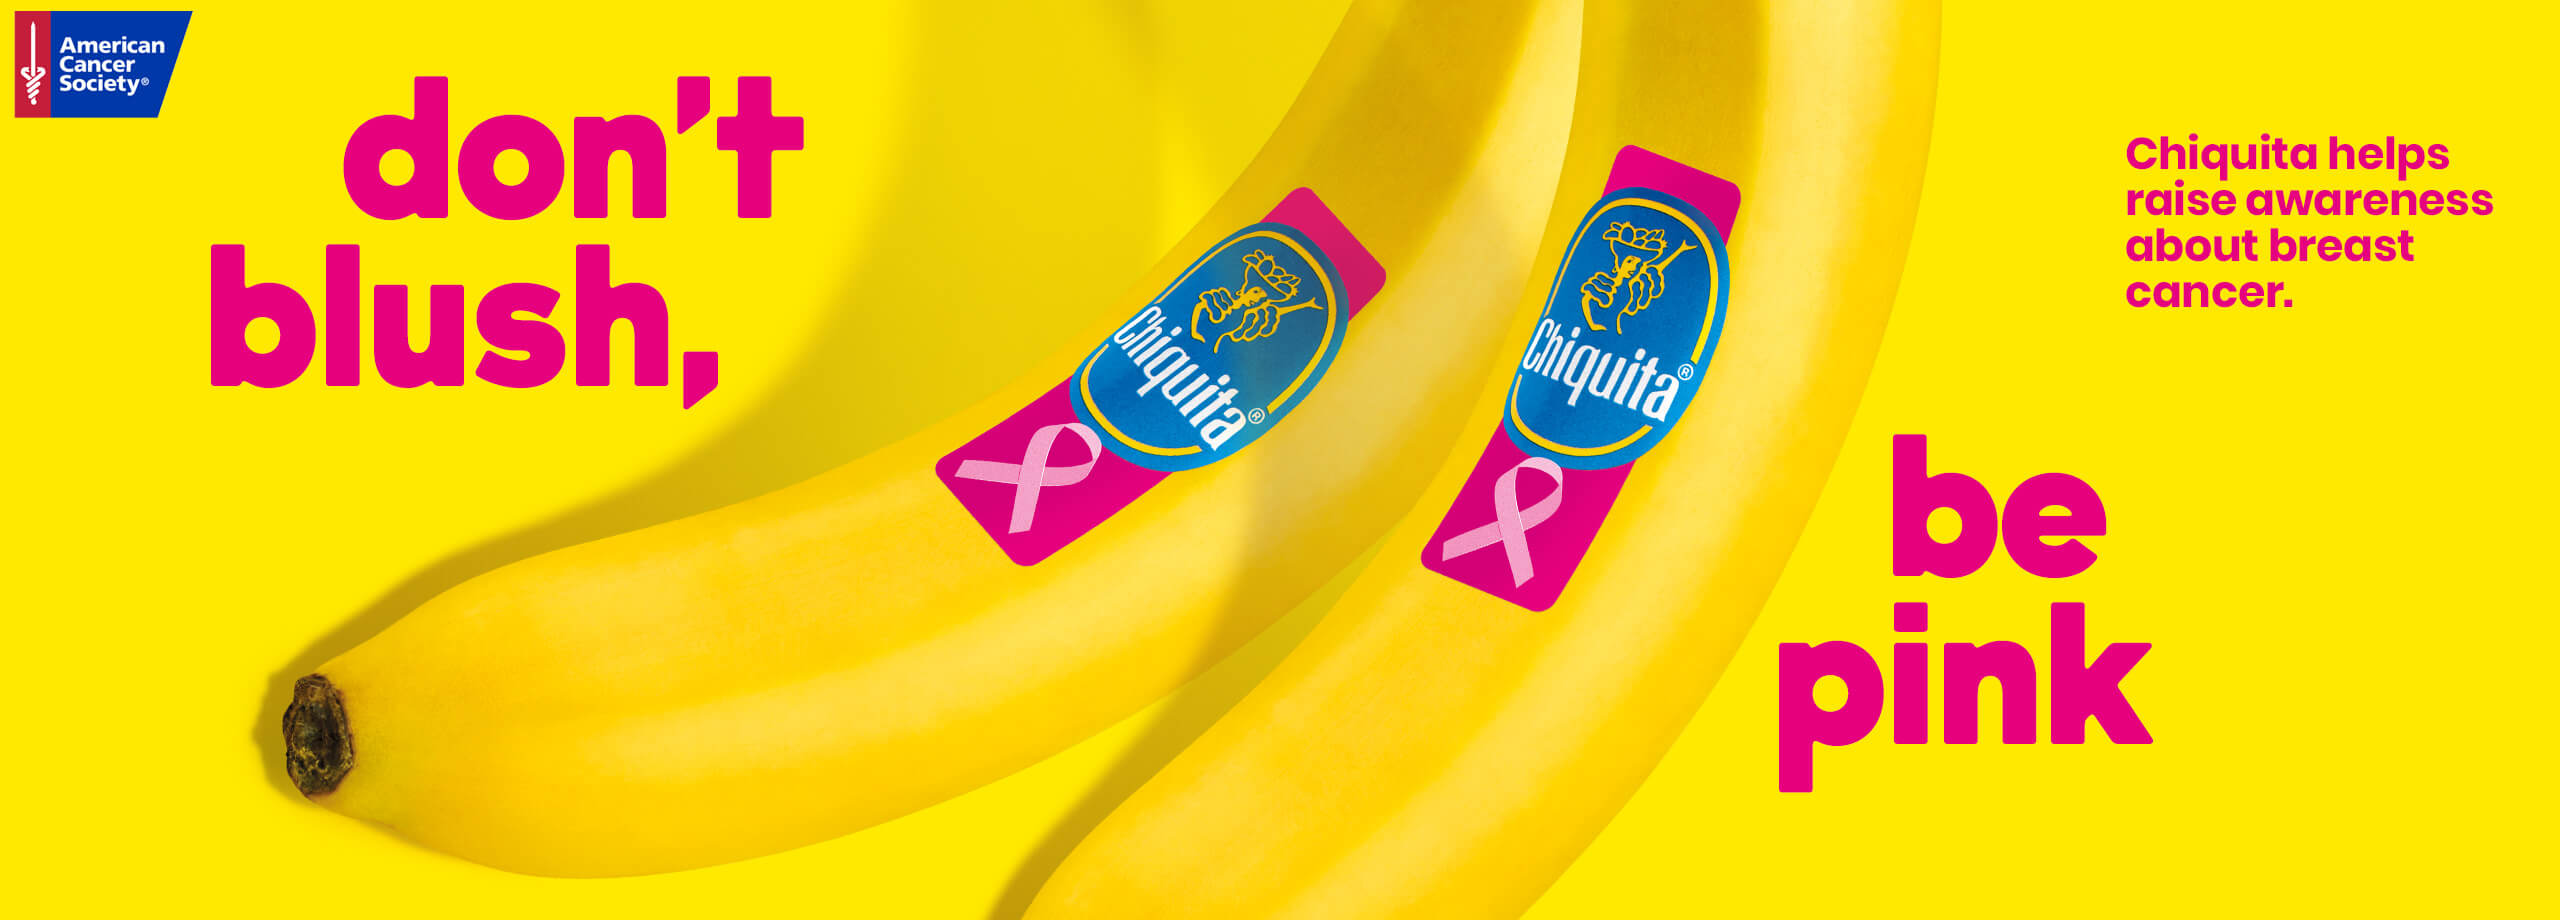 Pink_Sticker_Chiquita_News